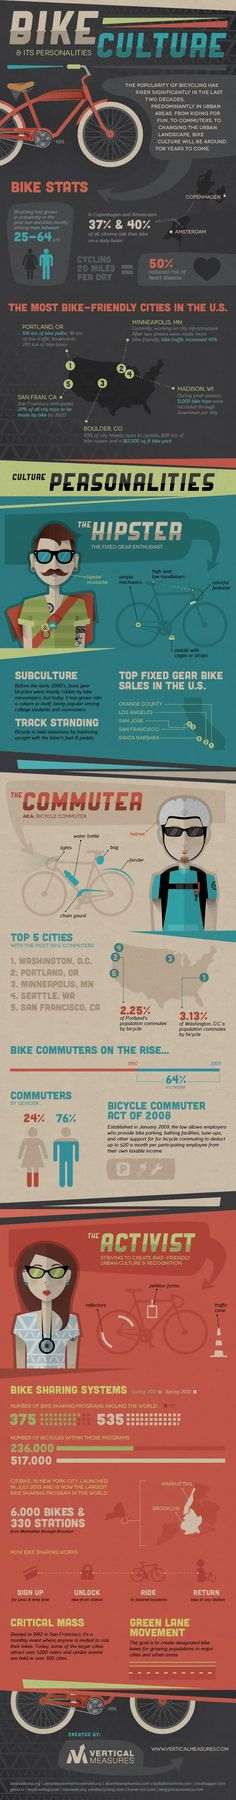 Bike Culture & Its Personalities #cycling #bicycles #bicycle #bike #hipster